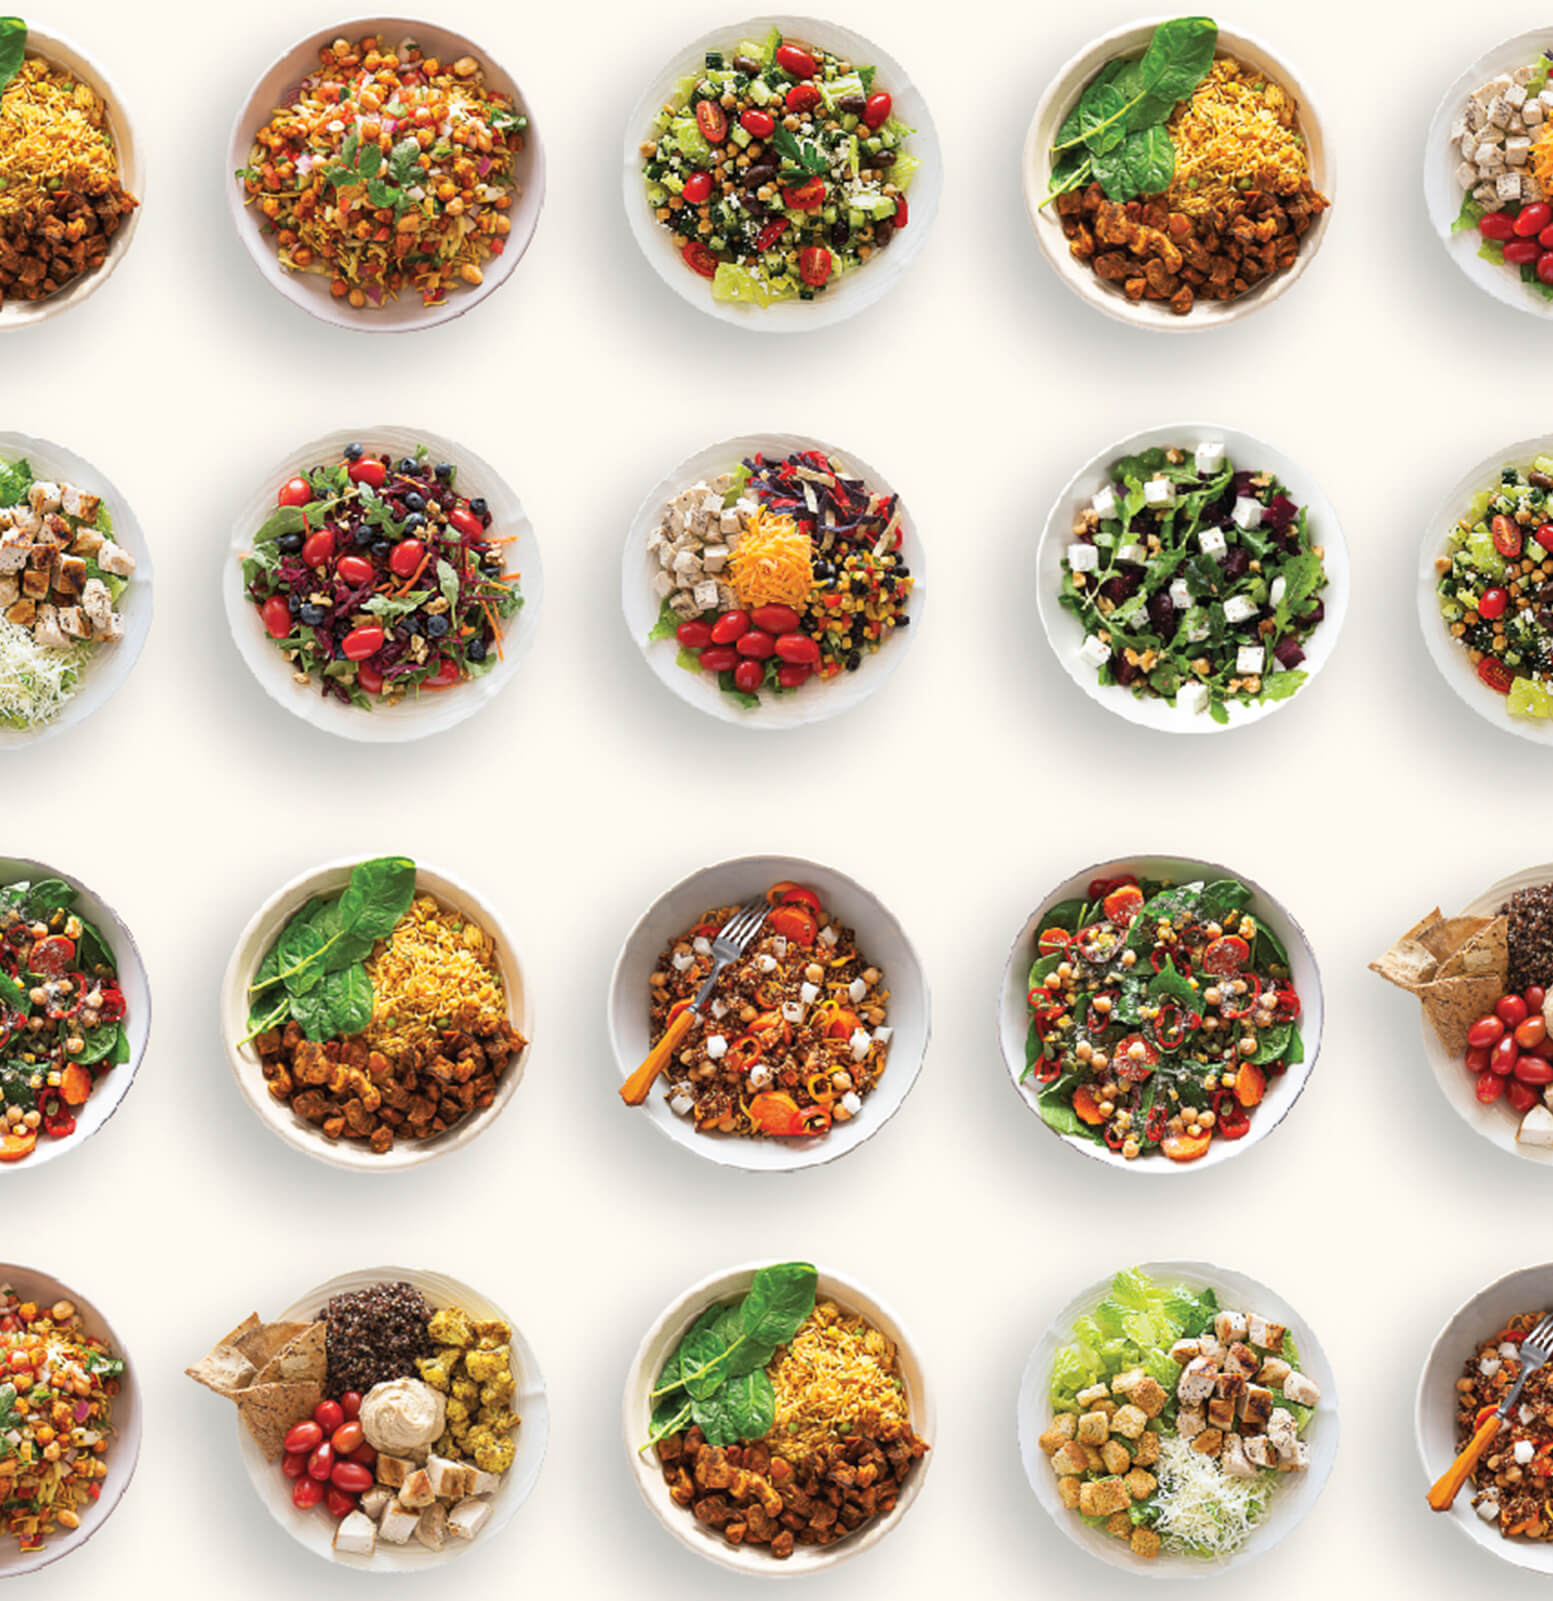 A variety of salads, grain bowls, snacks, pasta bowls, and breakfast bowls.